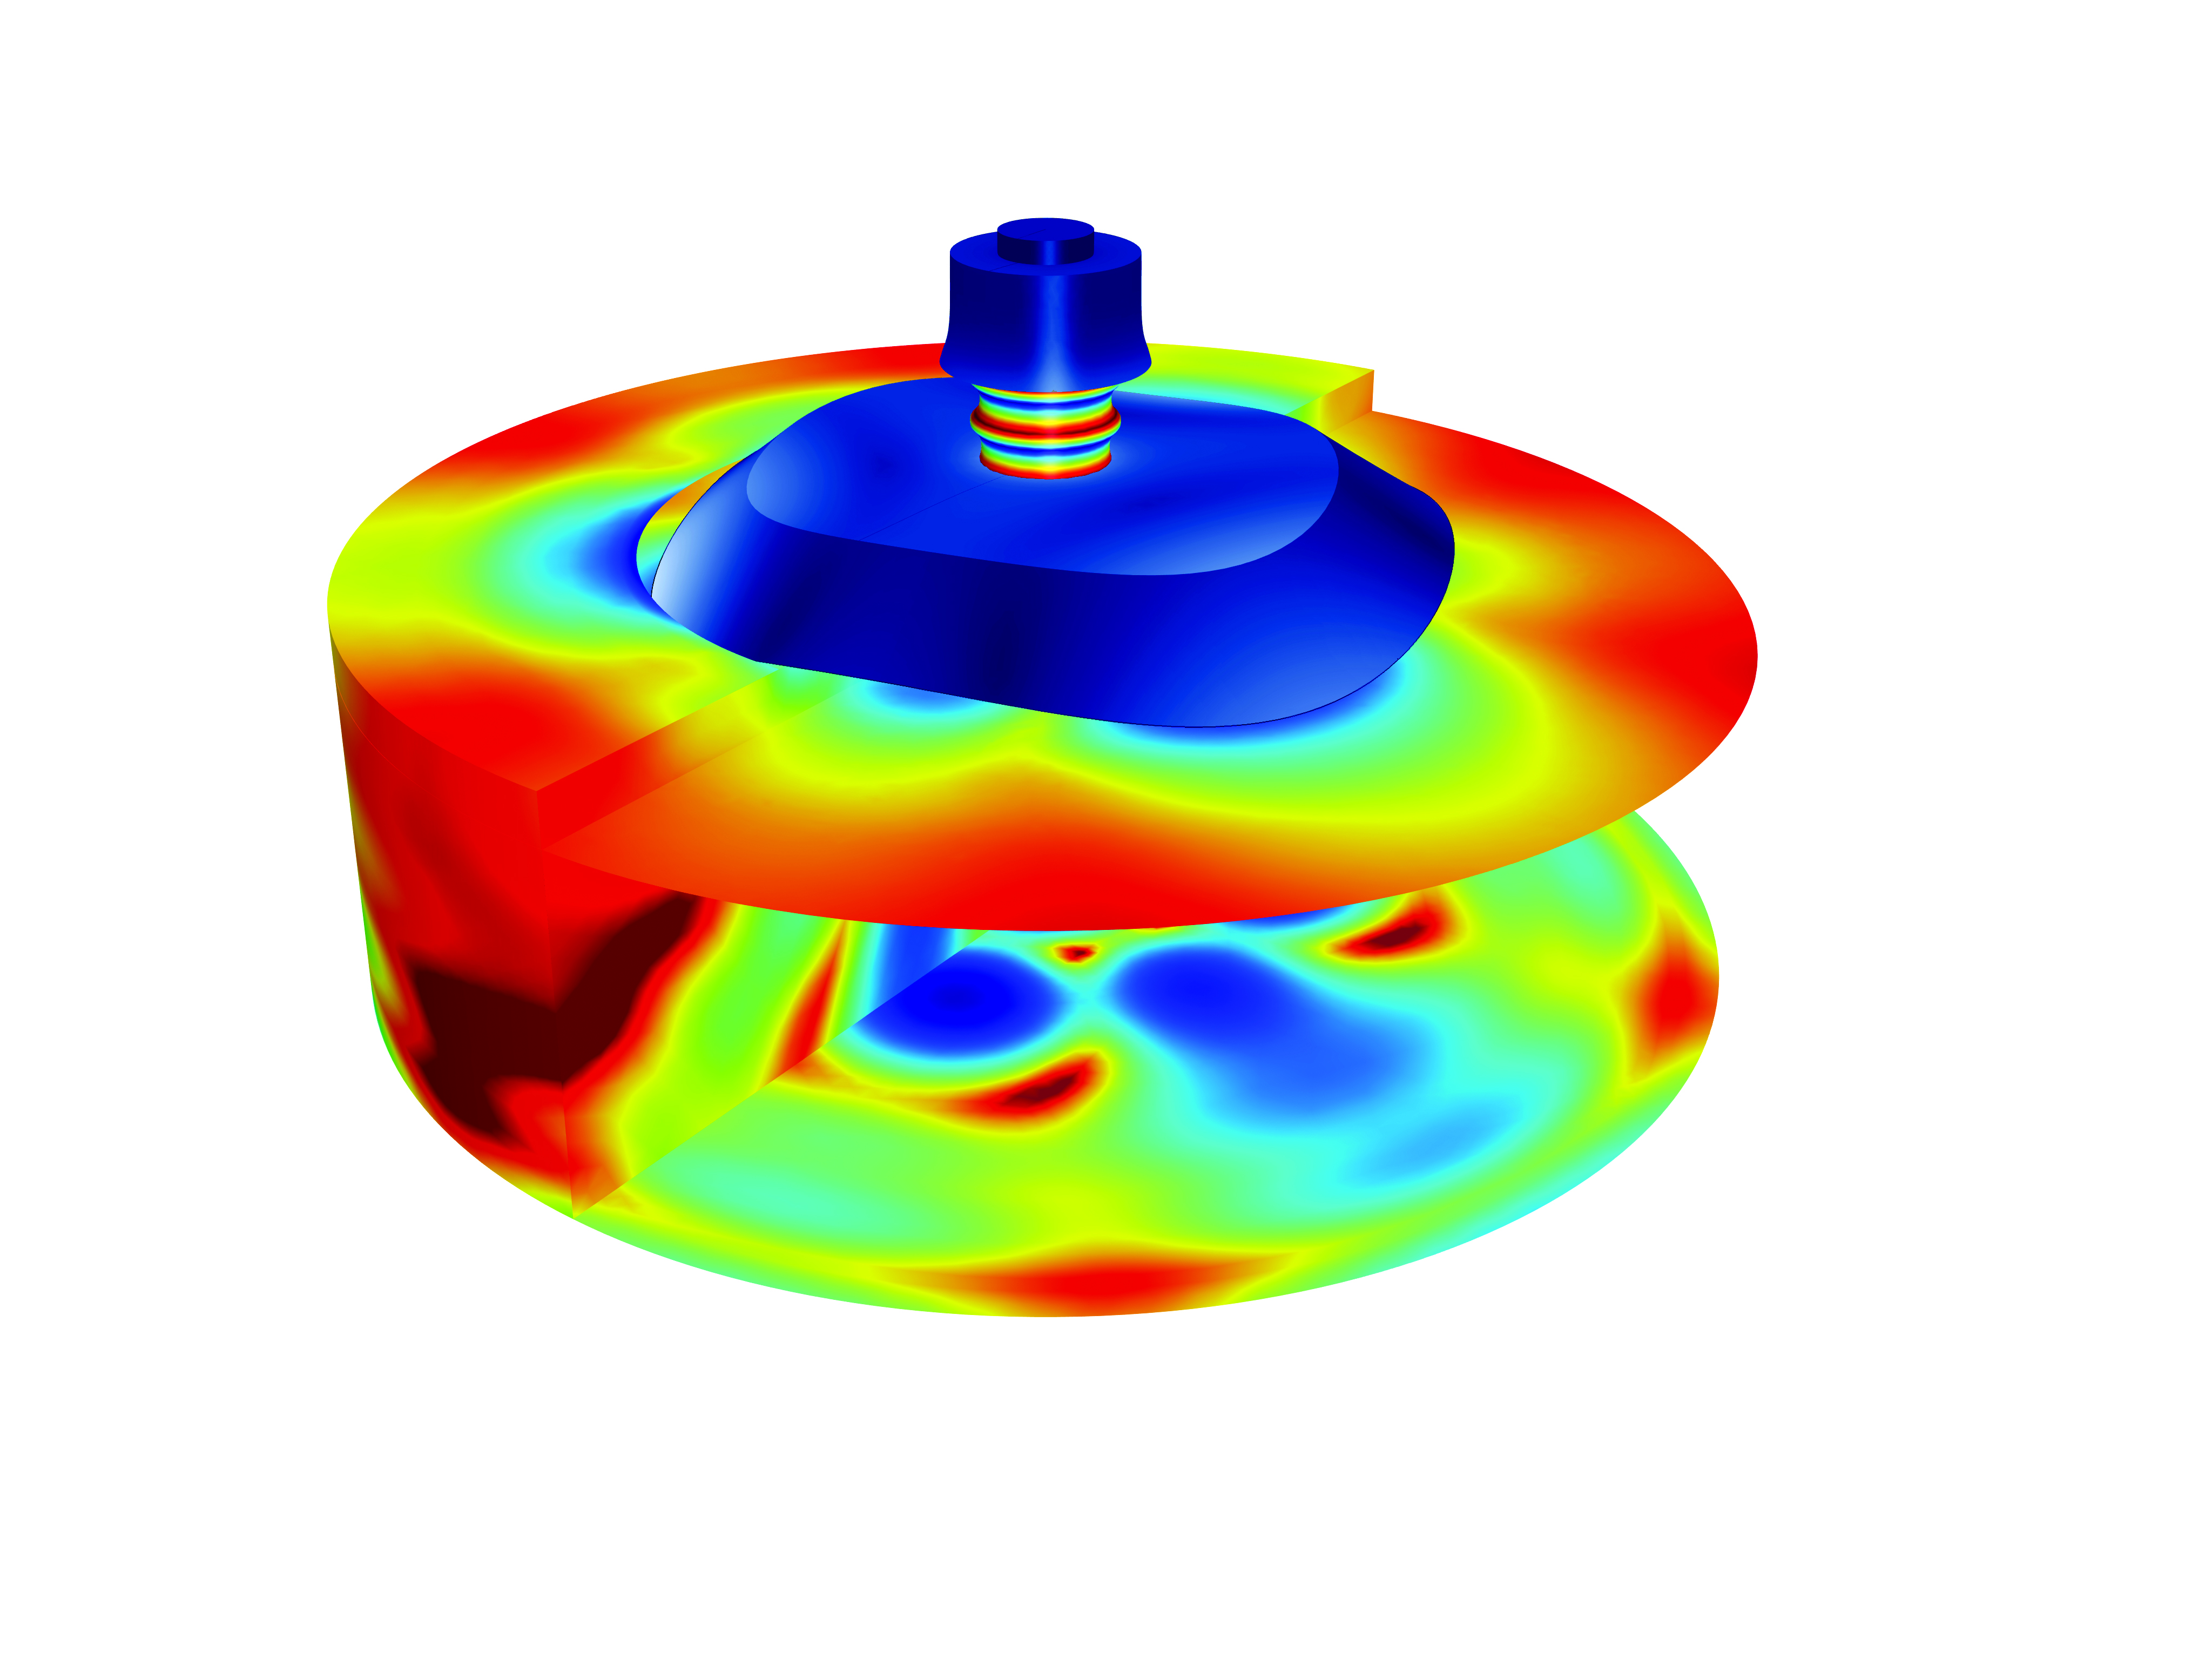 Tonpilz modeled with COMSOL Multiphysics